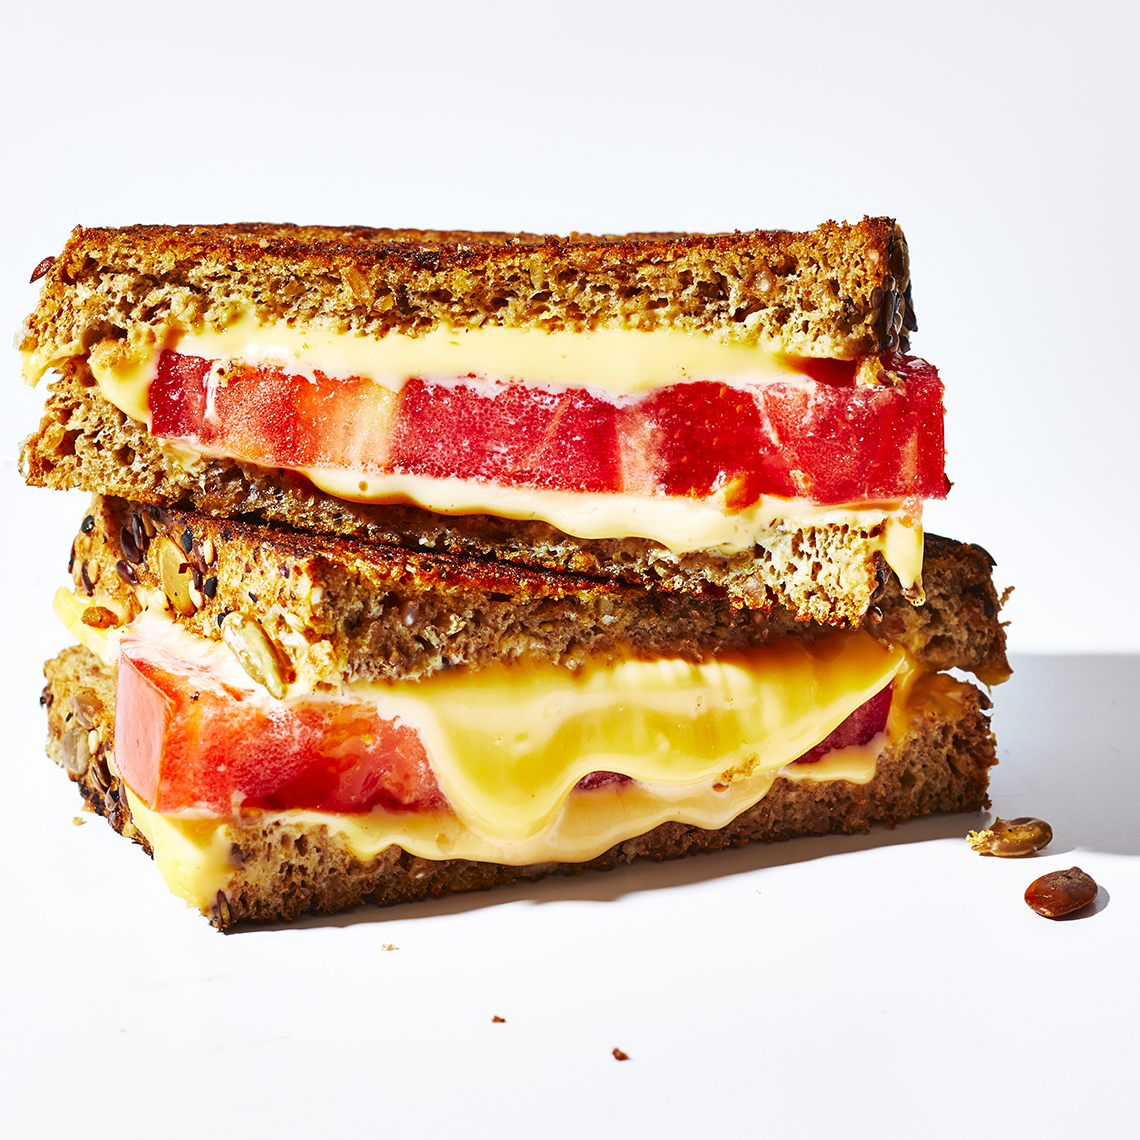 grilled cheese and tomato on wheat bread